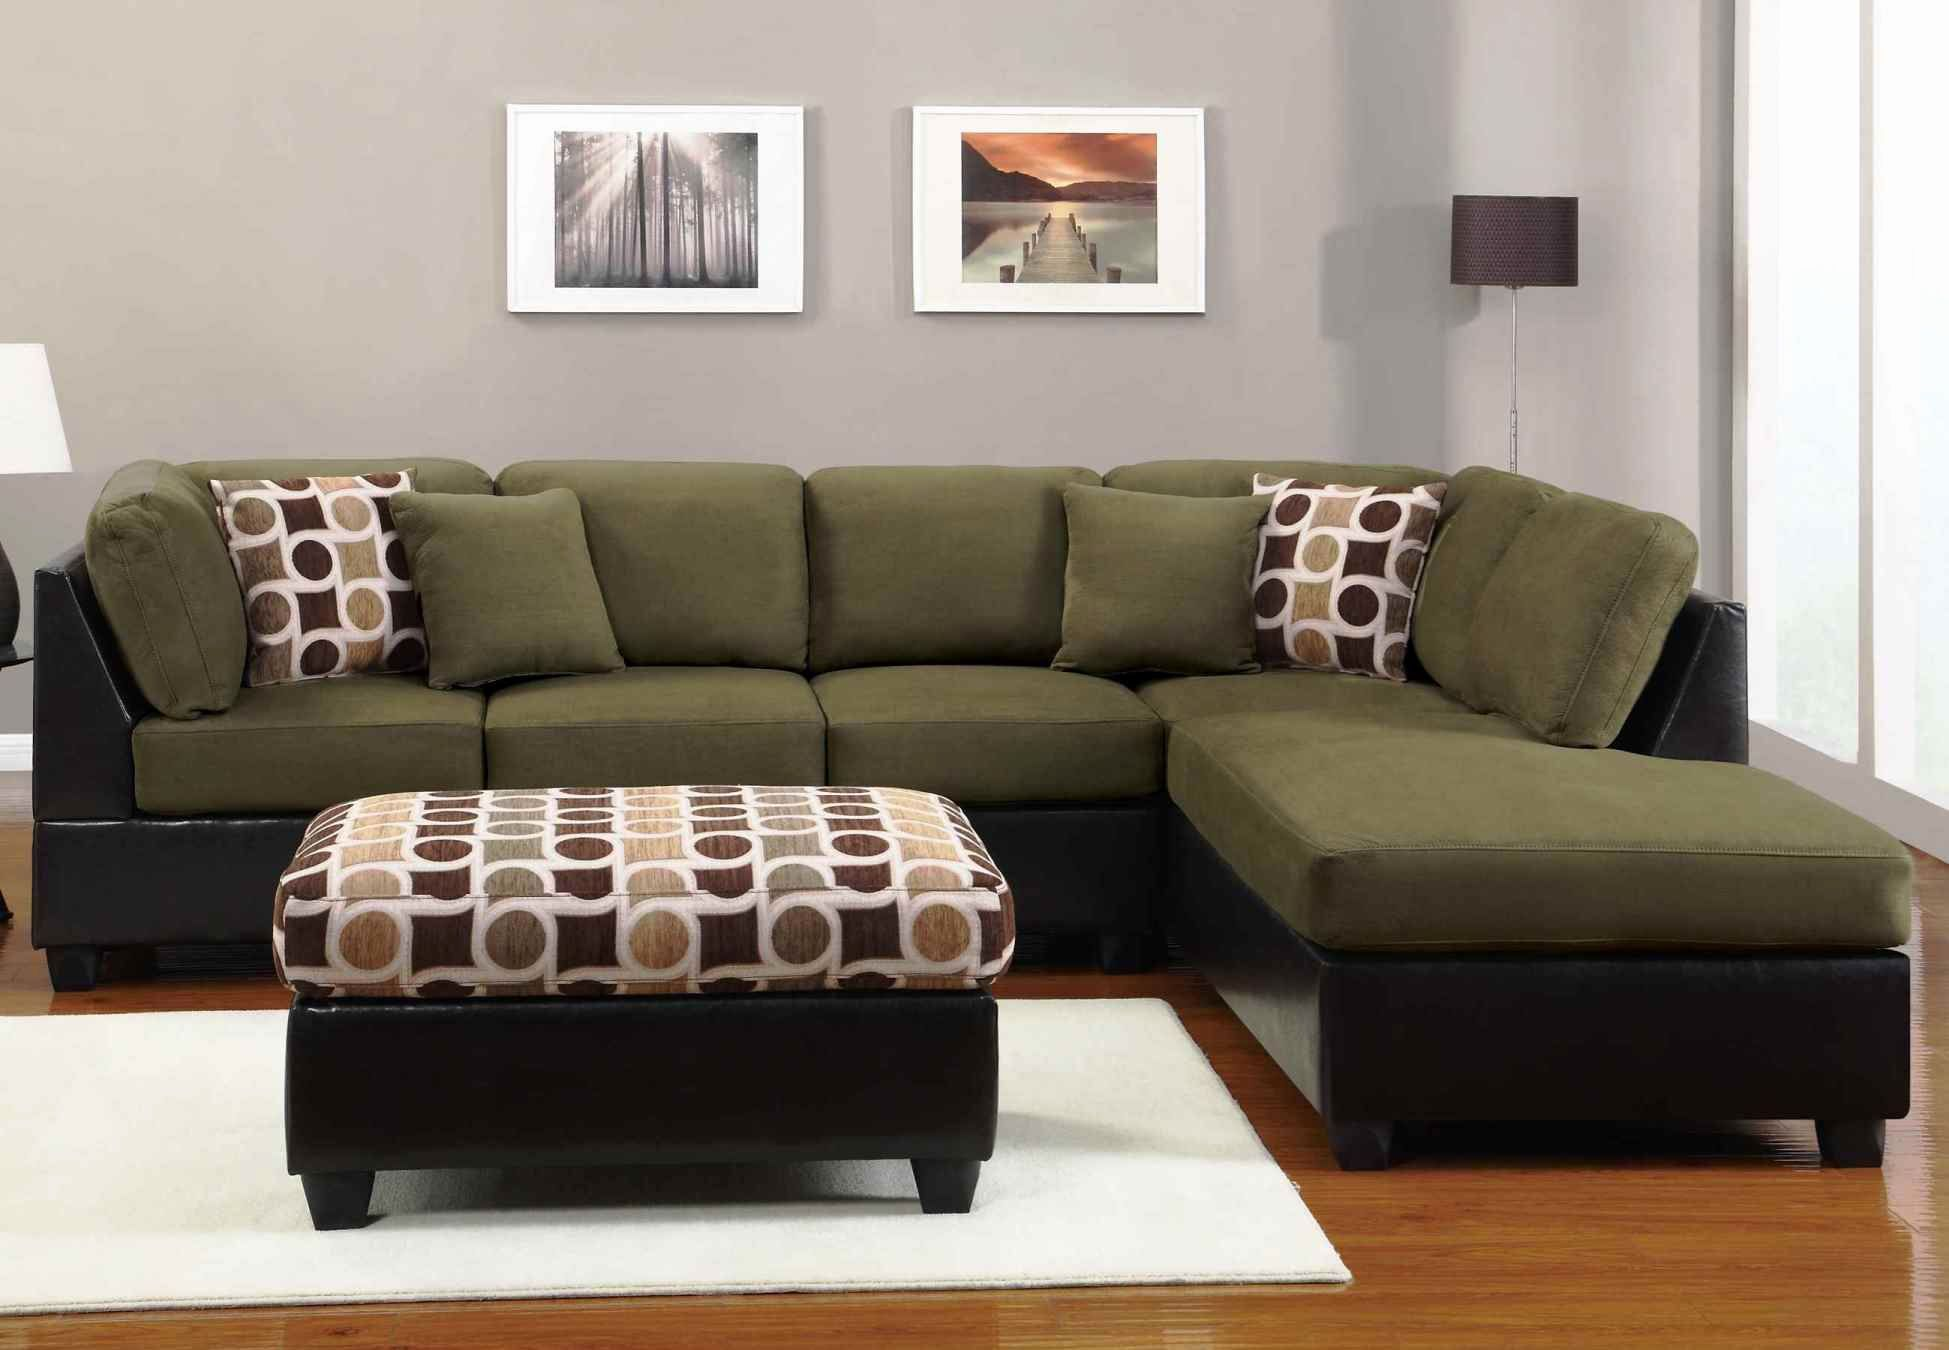 Best Of L Shape Sofa Living Room Pics L Shape Sofa Living Room Best